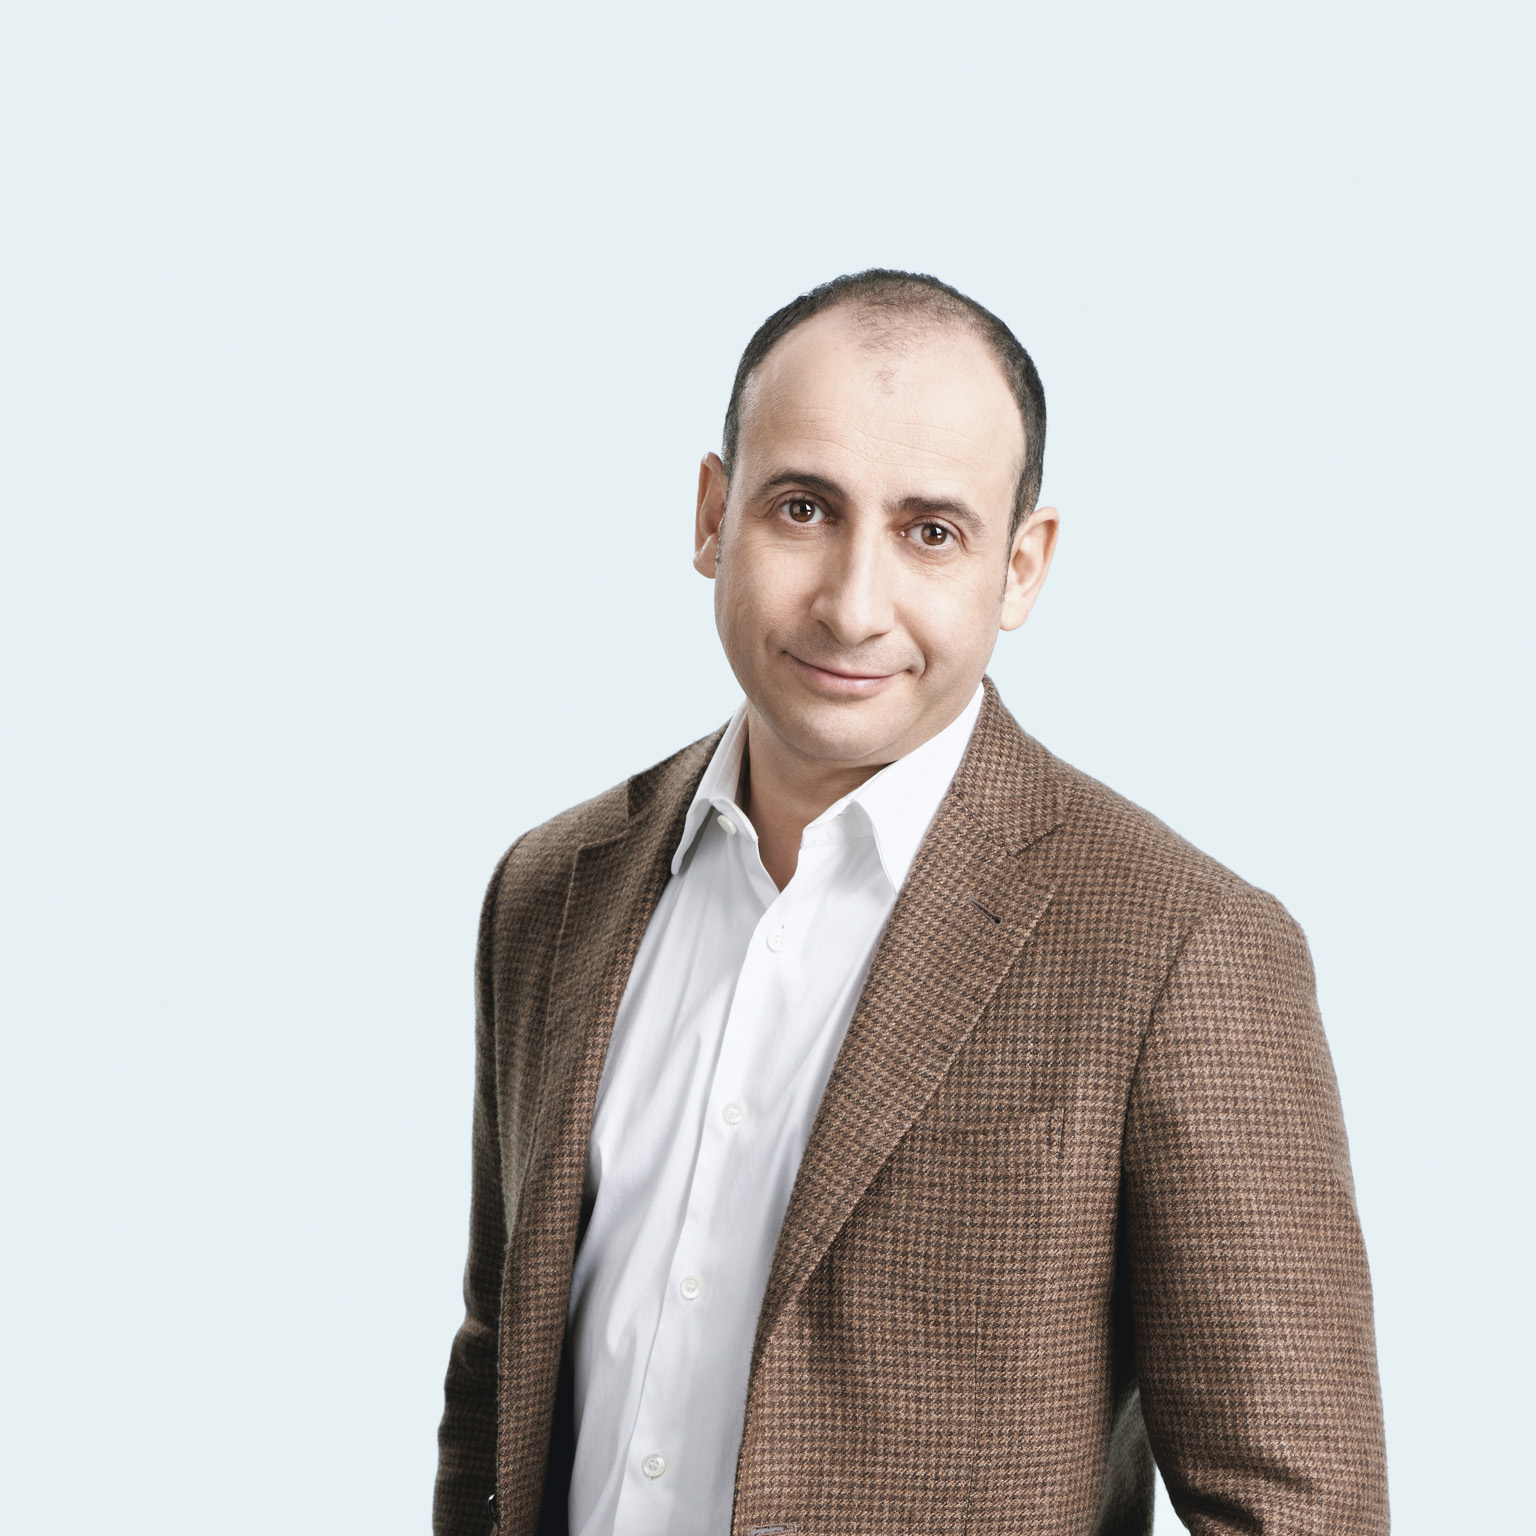 enhancing-customers'-grocery-journey-through-digitization:-an-interview-with-igor-shekhterman